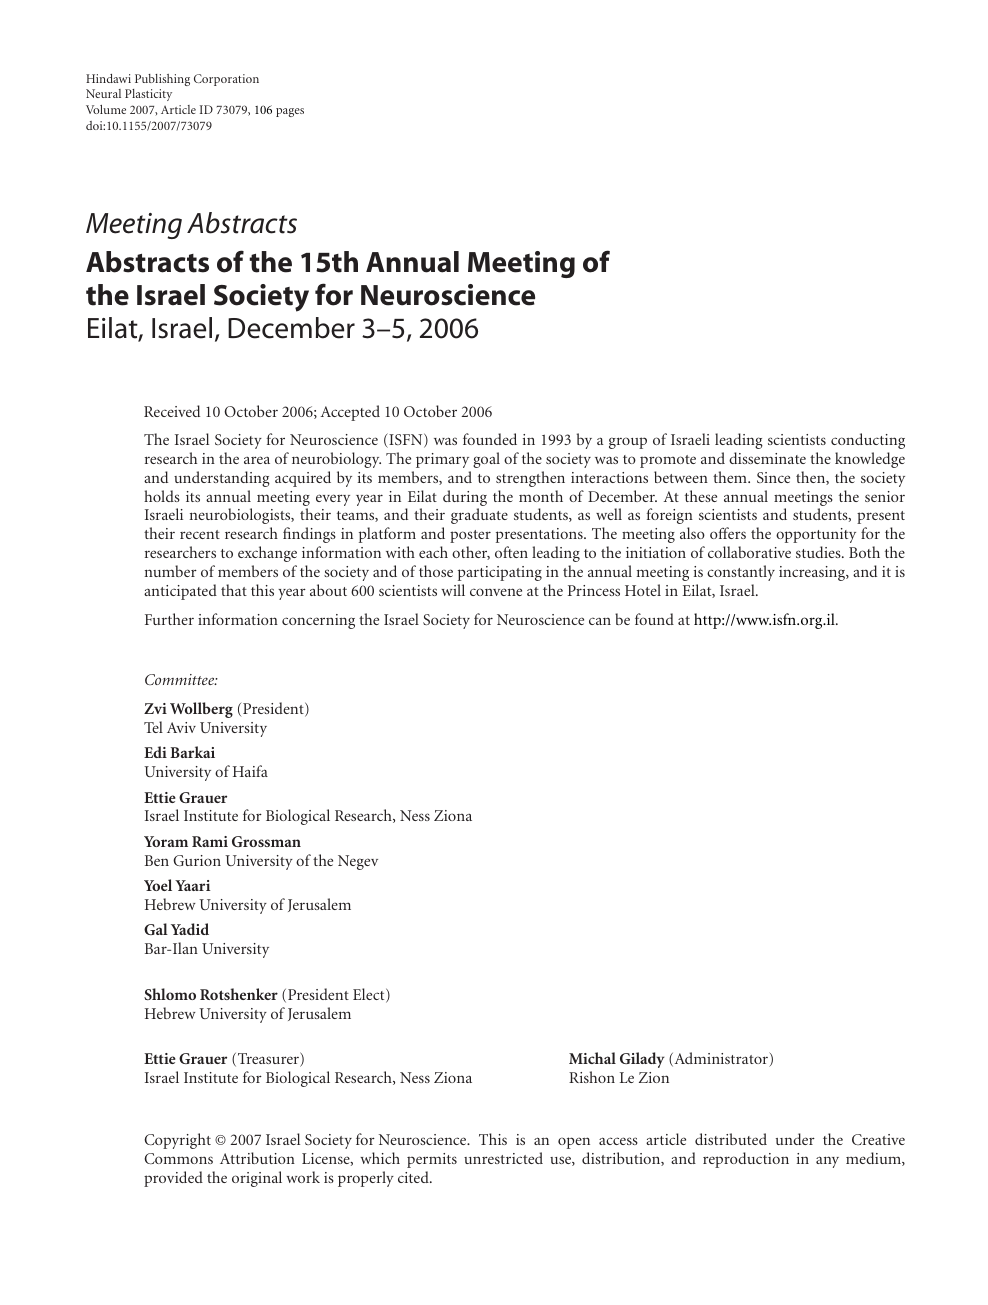 Abstracts of the 15th Annual Meeting of the Israel Society